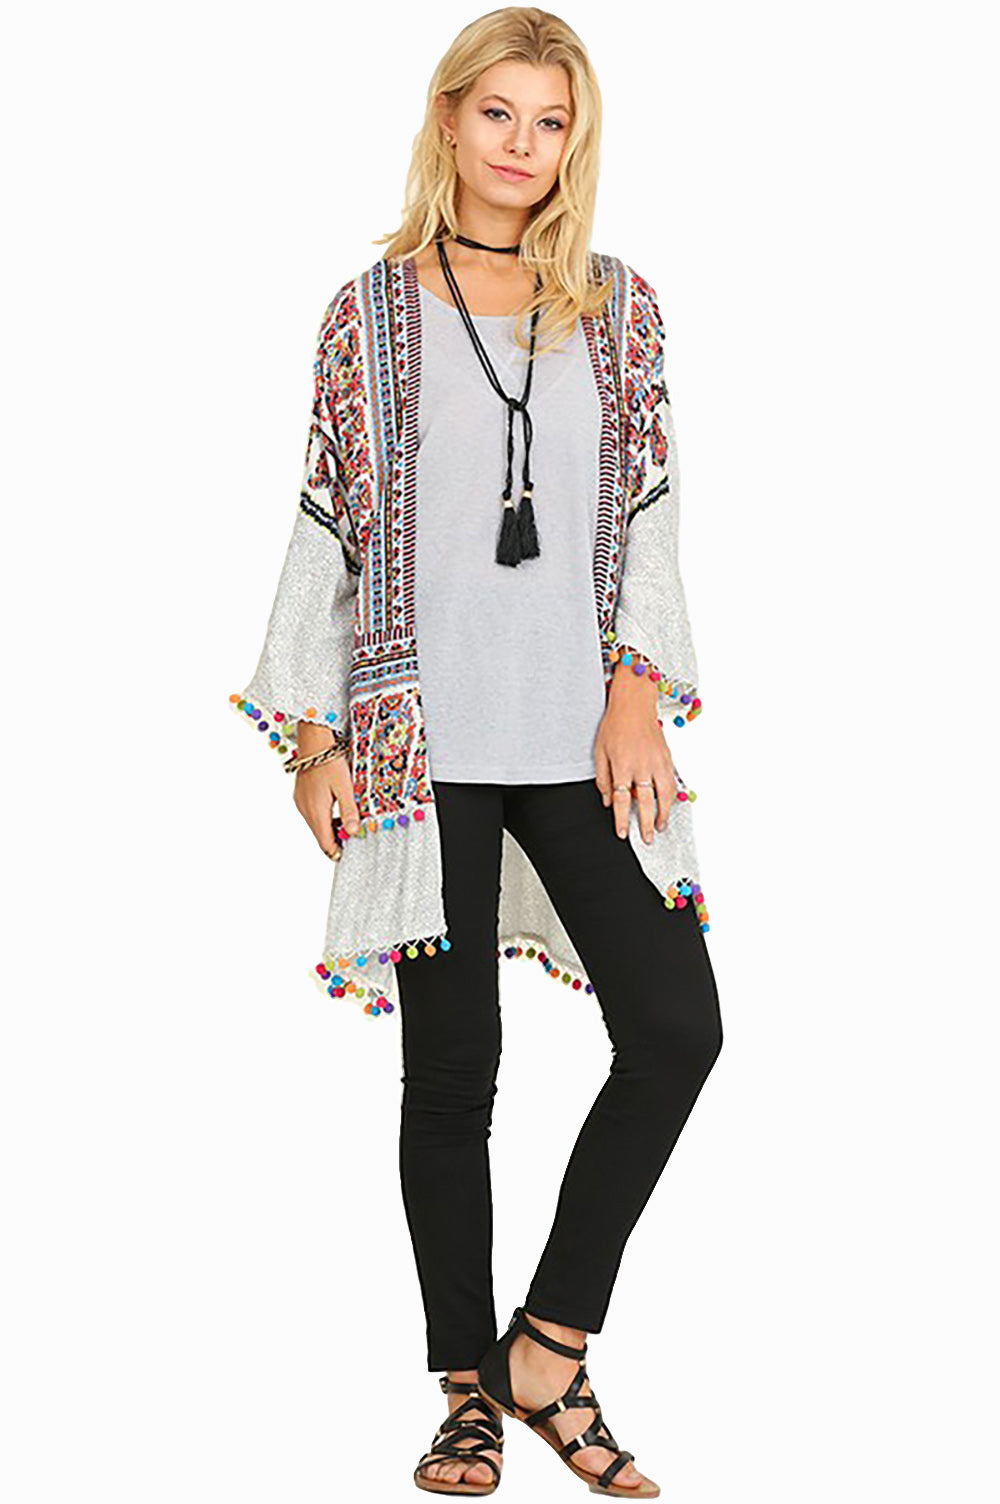 bed1038ab Women's Junior's Boho Tribal Print Colorful Pom Pom Loose Kimono Cardigan  Blouse - Fest Threads ...